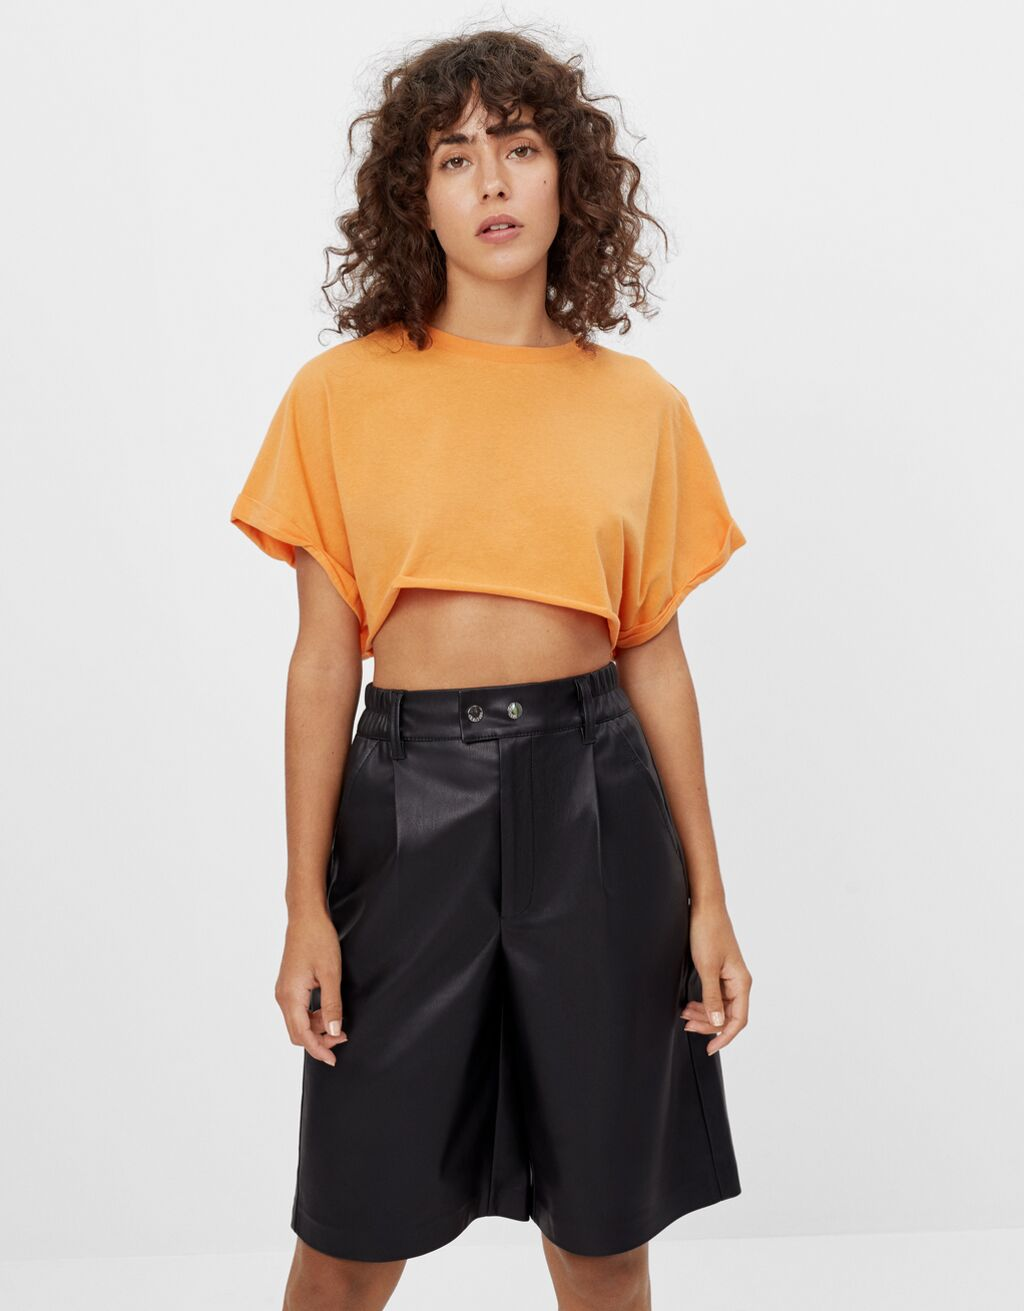 Super cropped T-shirt